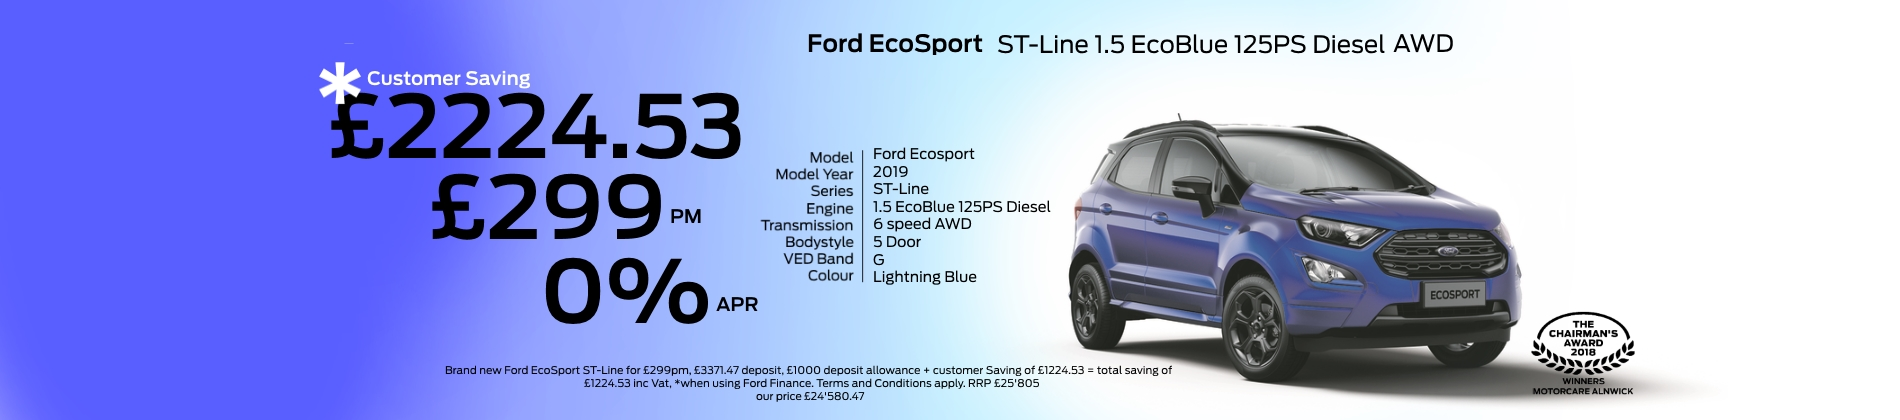 ford ecosport st